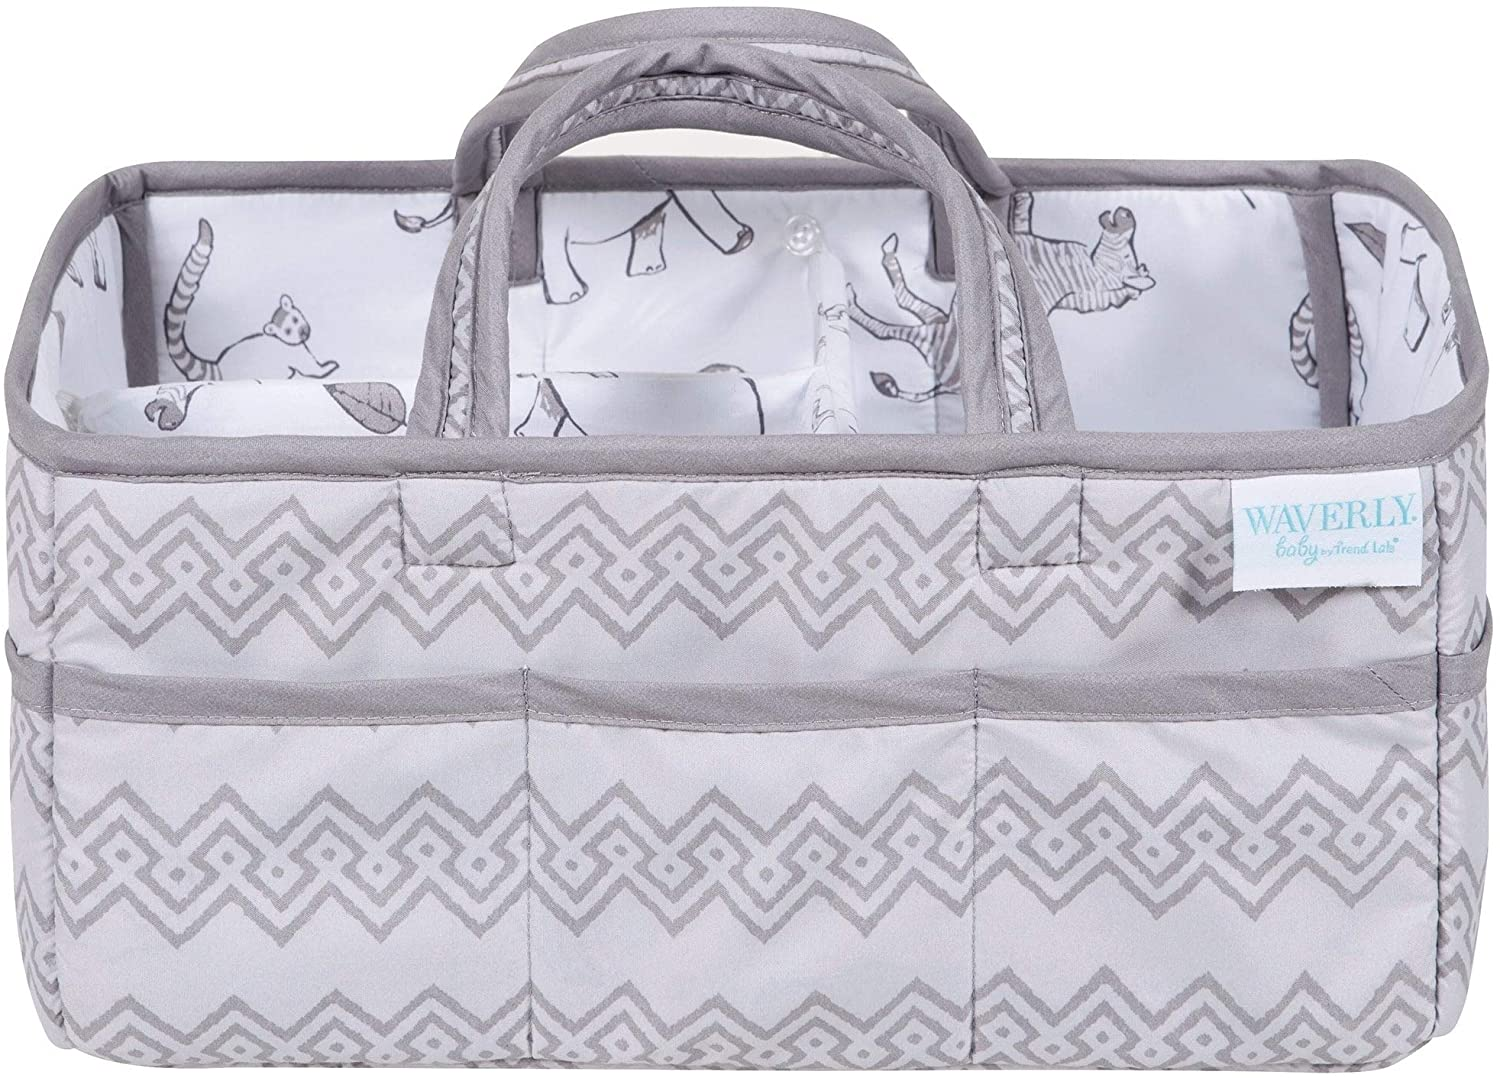 Congo Line Diaper Caddy Grey Boys Synthetic Fiber